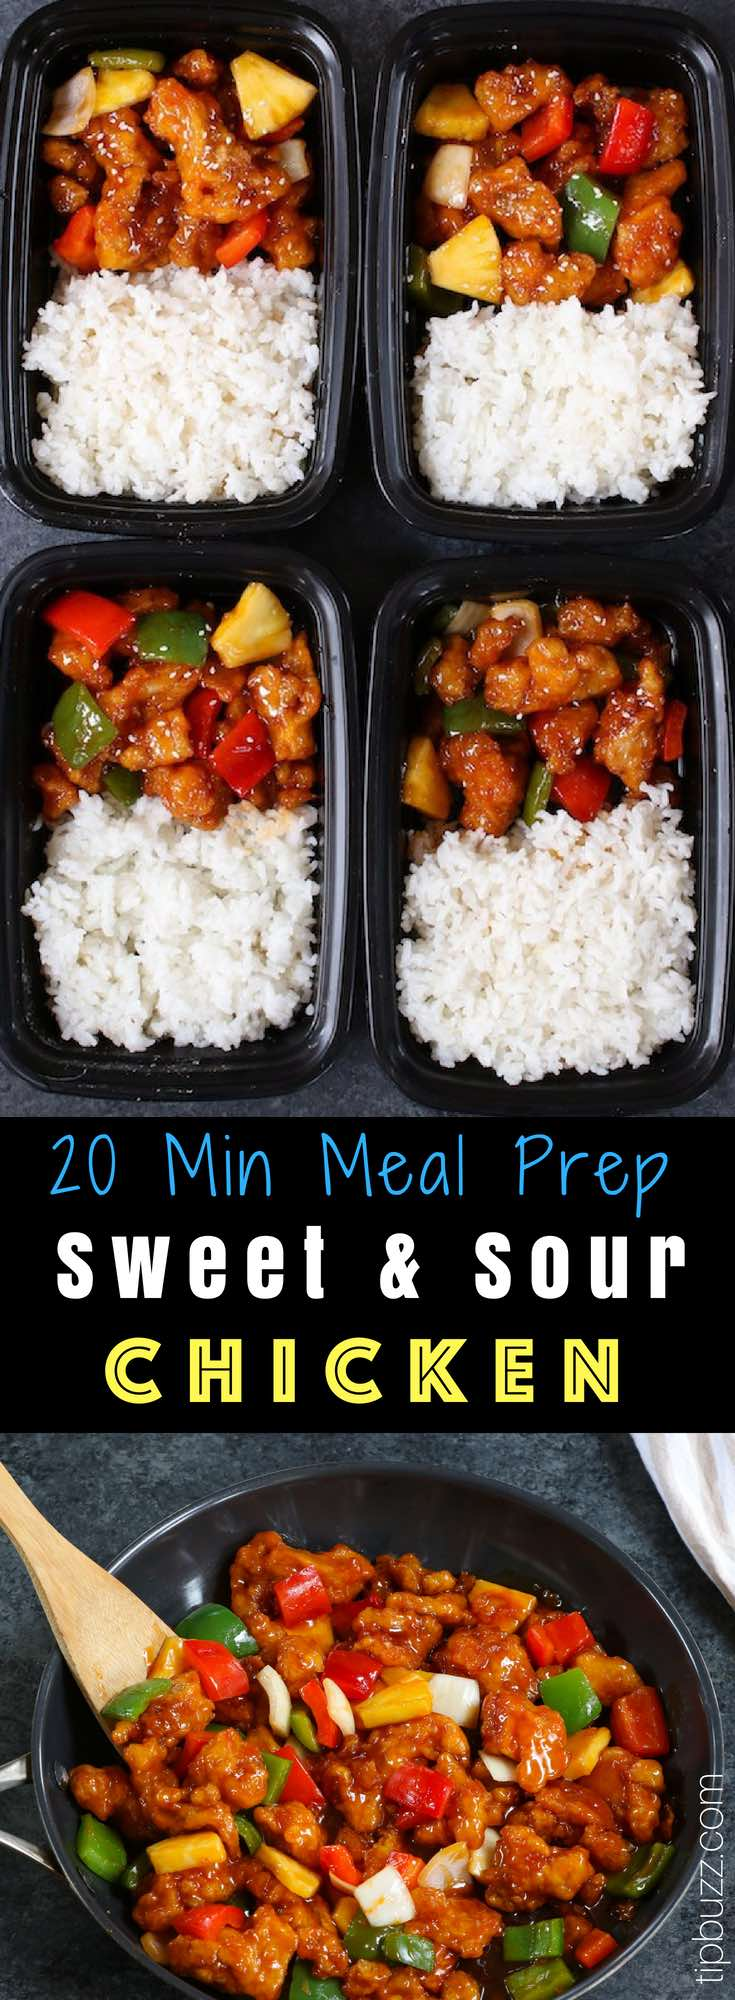 This Sweet and Sour Chicken is tender and crispy with bell peppers and pineapple in an irresistible sweet and sour sauce. It's ready in just 20 minutes and makes a quick weeknight dinner that's so much better than takeout from Chinese restaurants! #SweetAndSourChicken #MealPrep #ChickenMealPrep